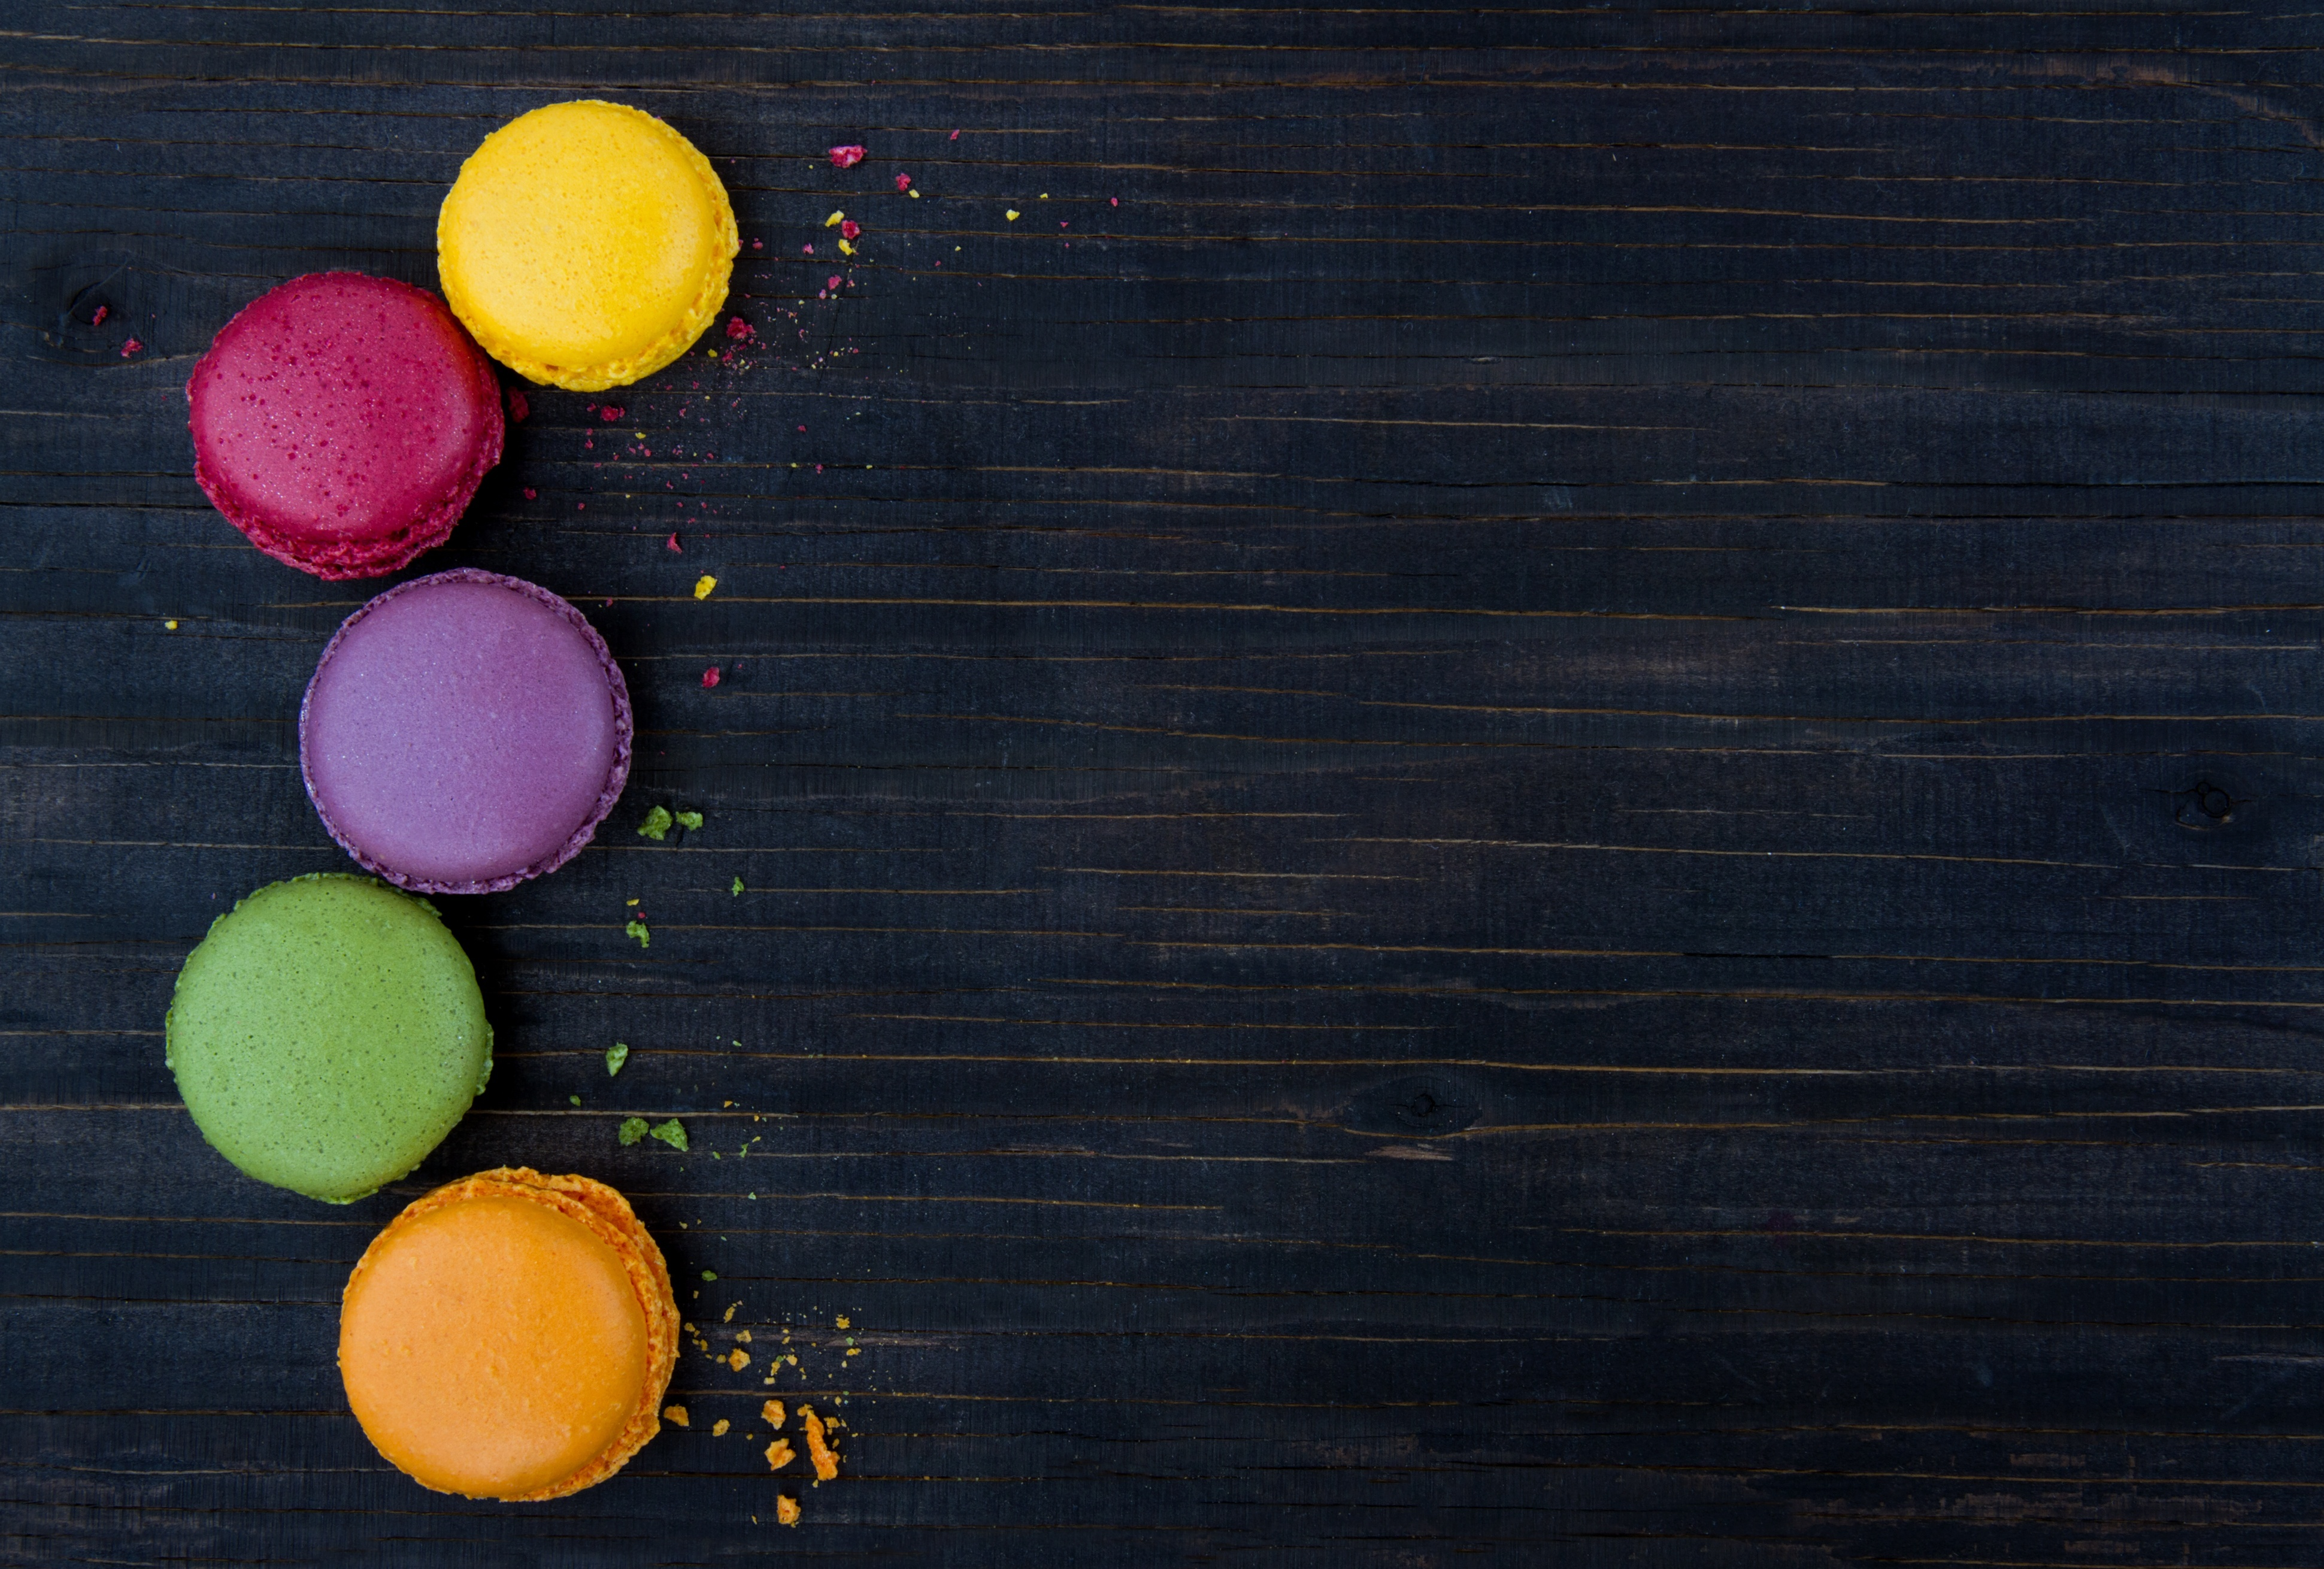 18837615 – macaroons background, colorful cookies on black wooden table